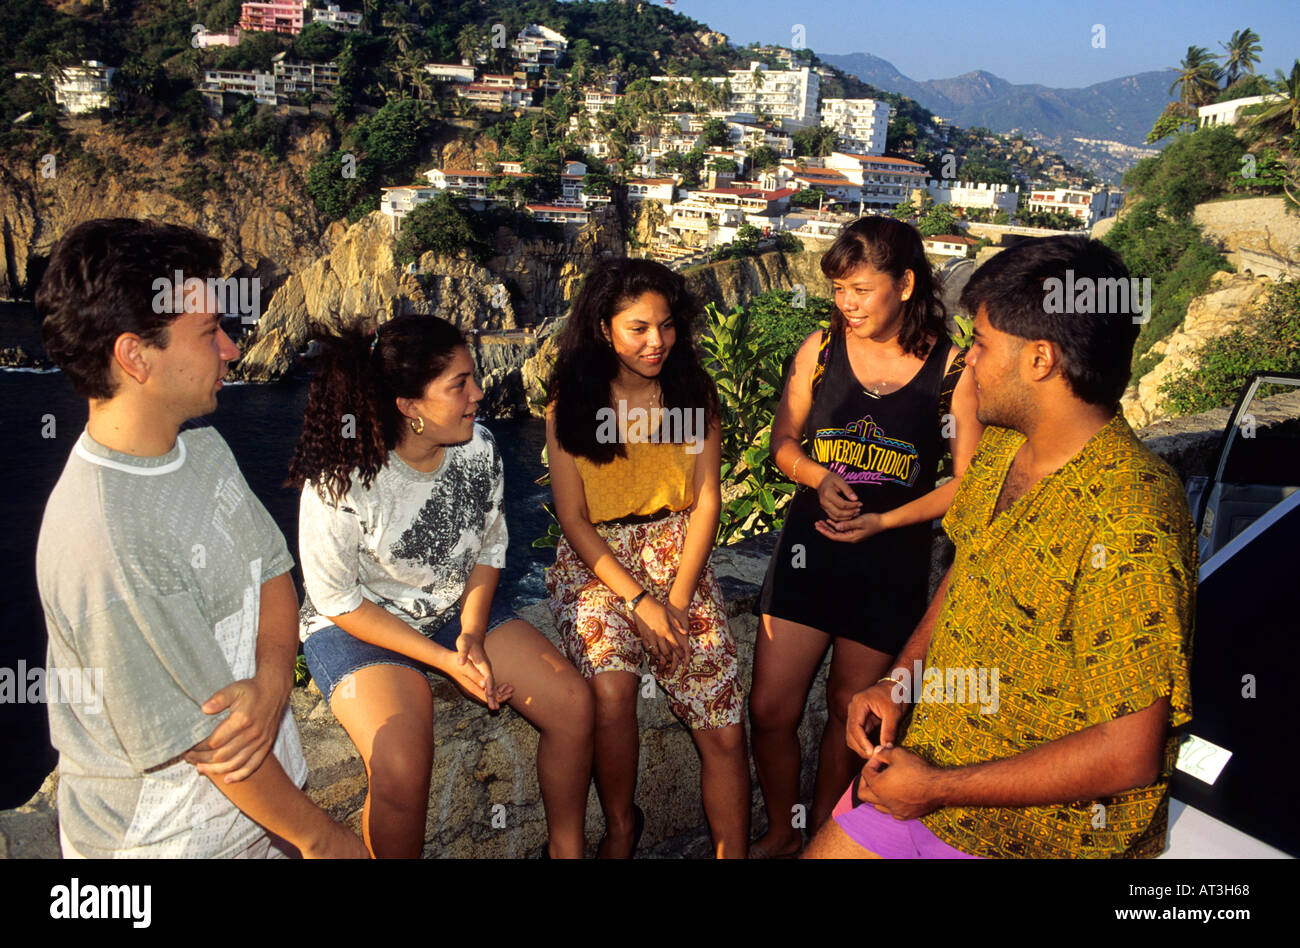 Mexican Teens Talking In A Group At Acapulco Mexico Stock Photo Royalty Free Image 5285223